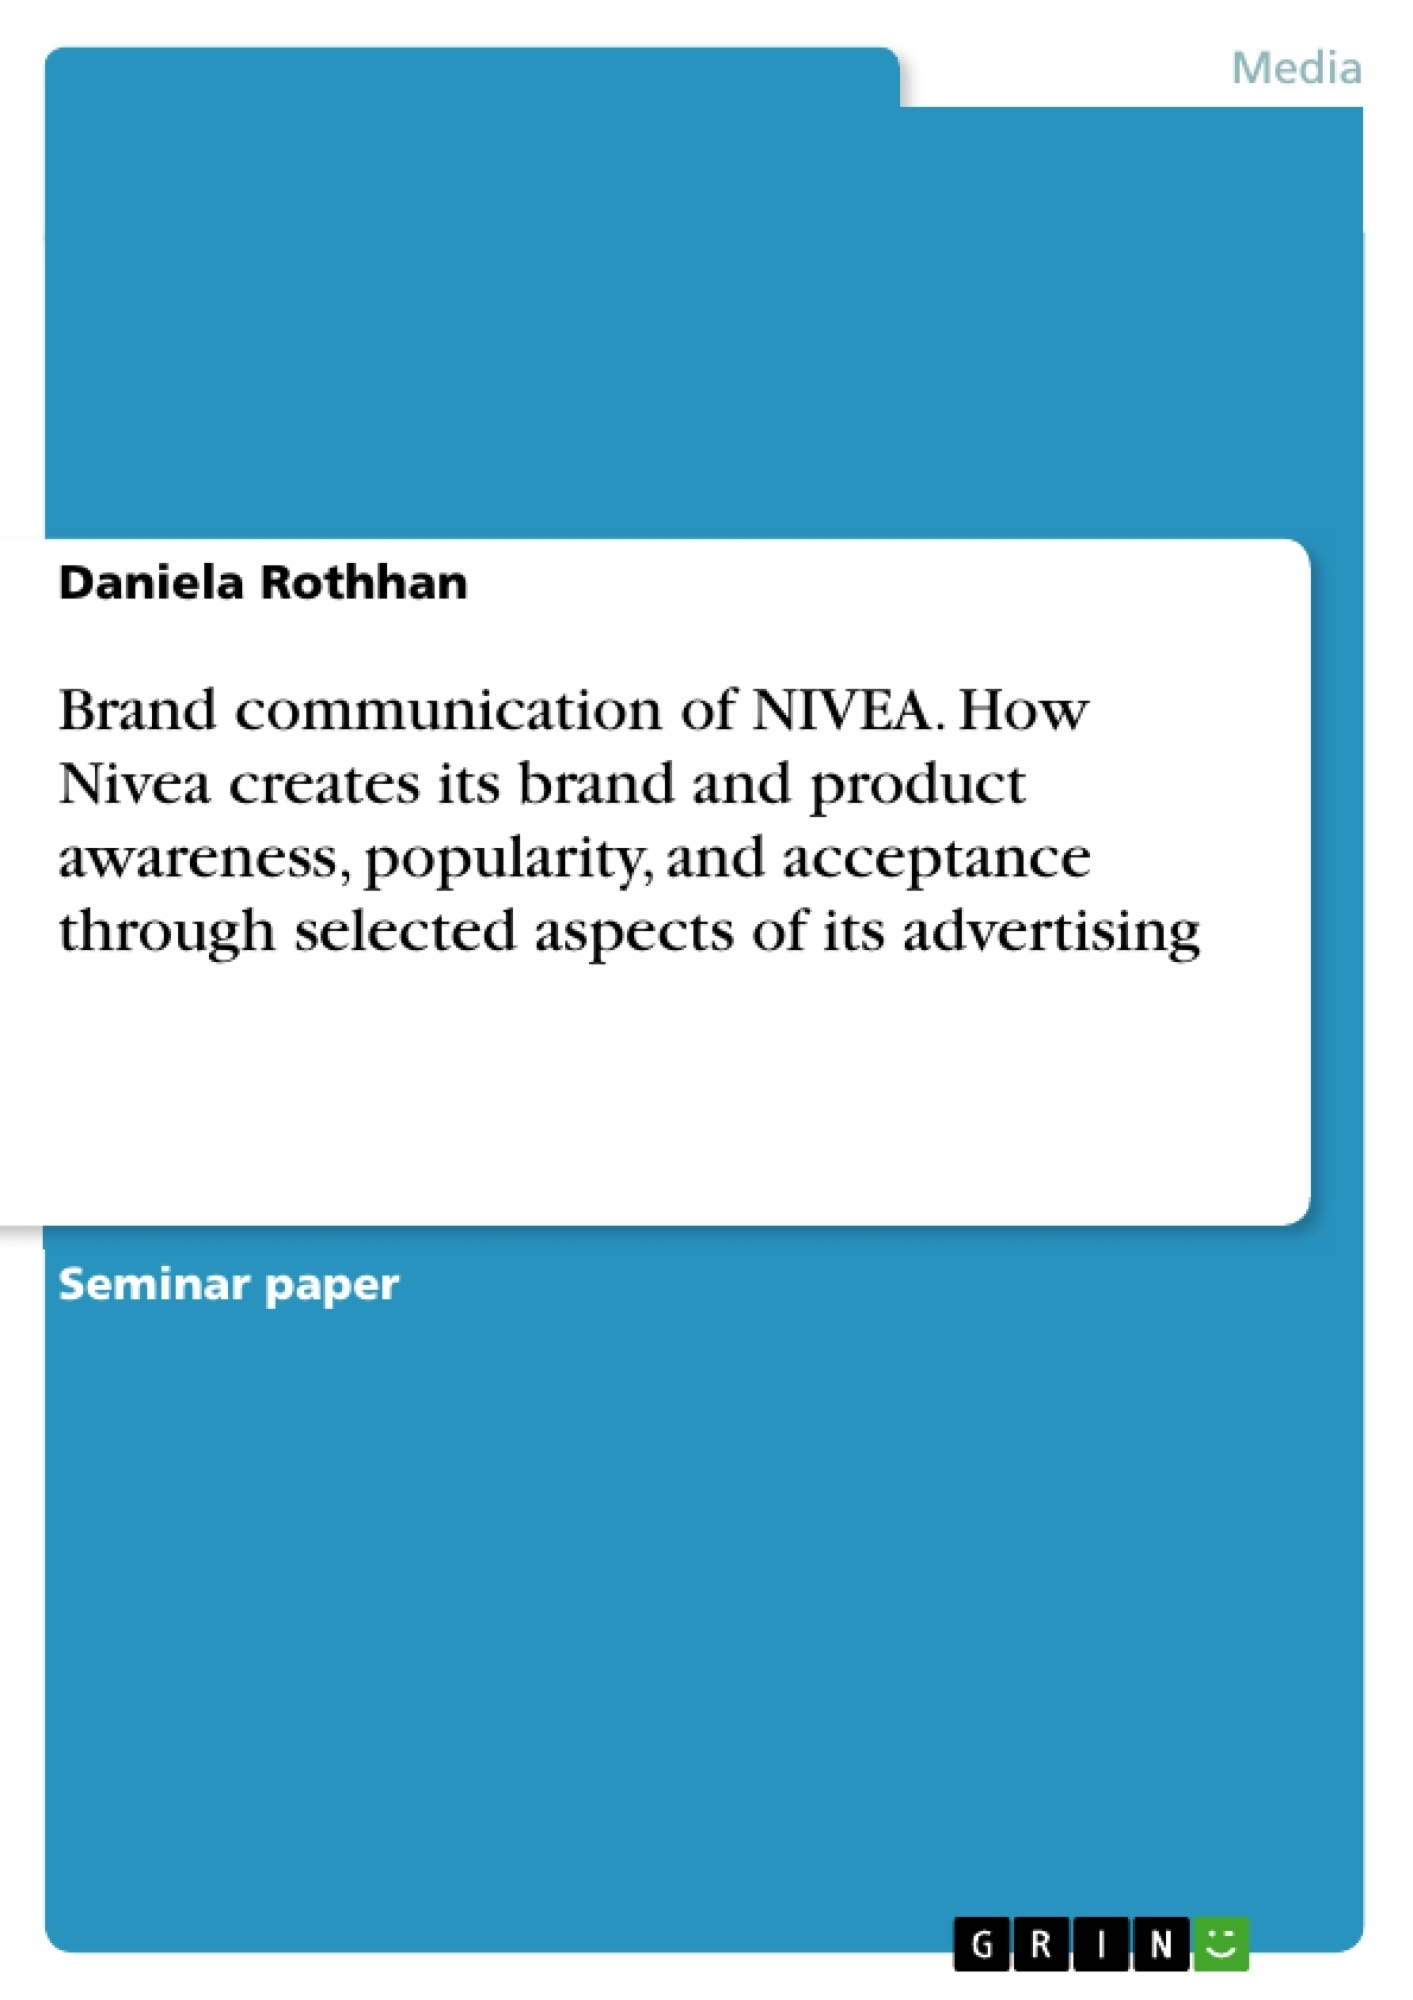 Title: Brand communication of NIVEA. How Nivea creates its brand and product awareness, popularity, and acceptance through selected aspects of its advertising